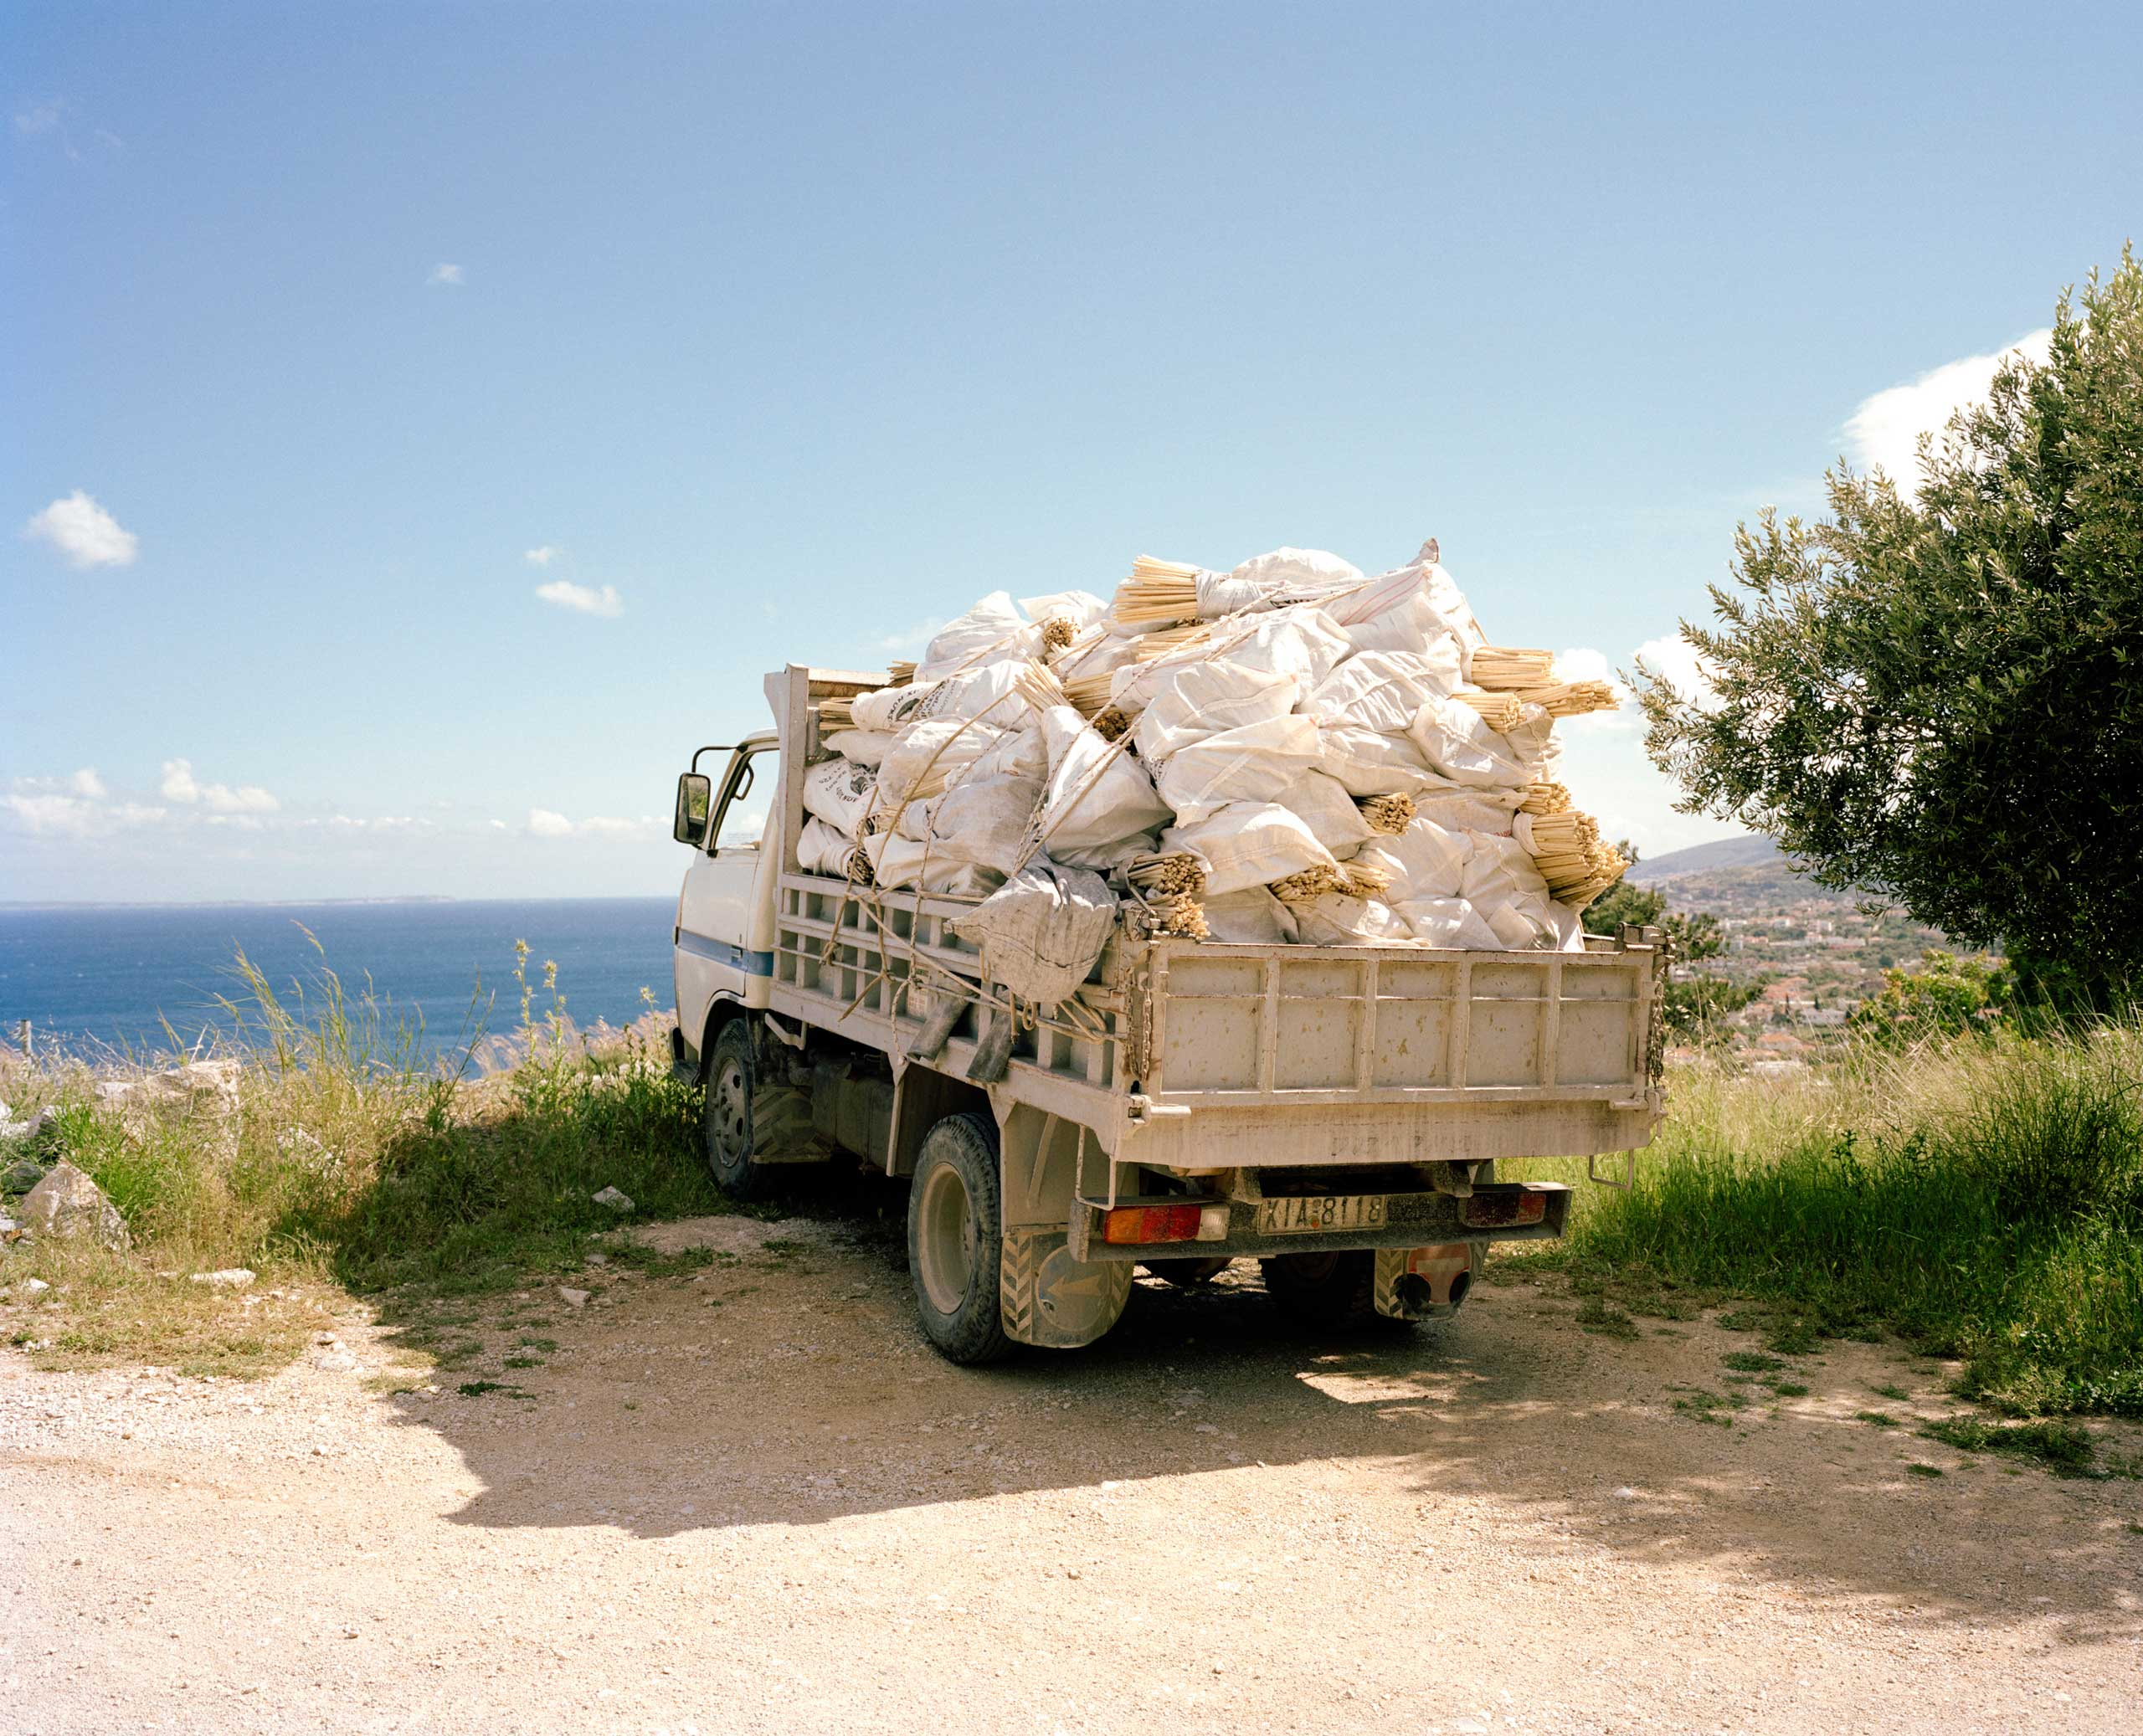 A truck waits to transport 8,000 homemade rockets down to the village after being stored in hiding for the past few months in Vrontados, Chios, Greece.